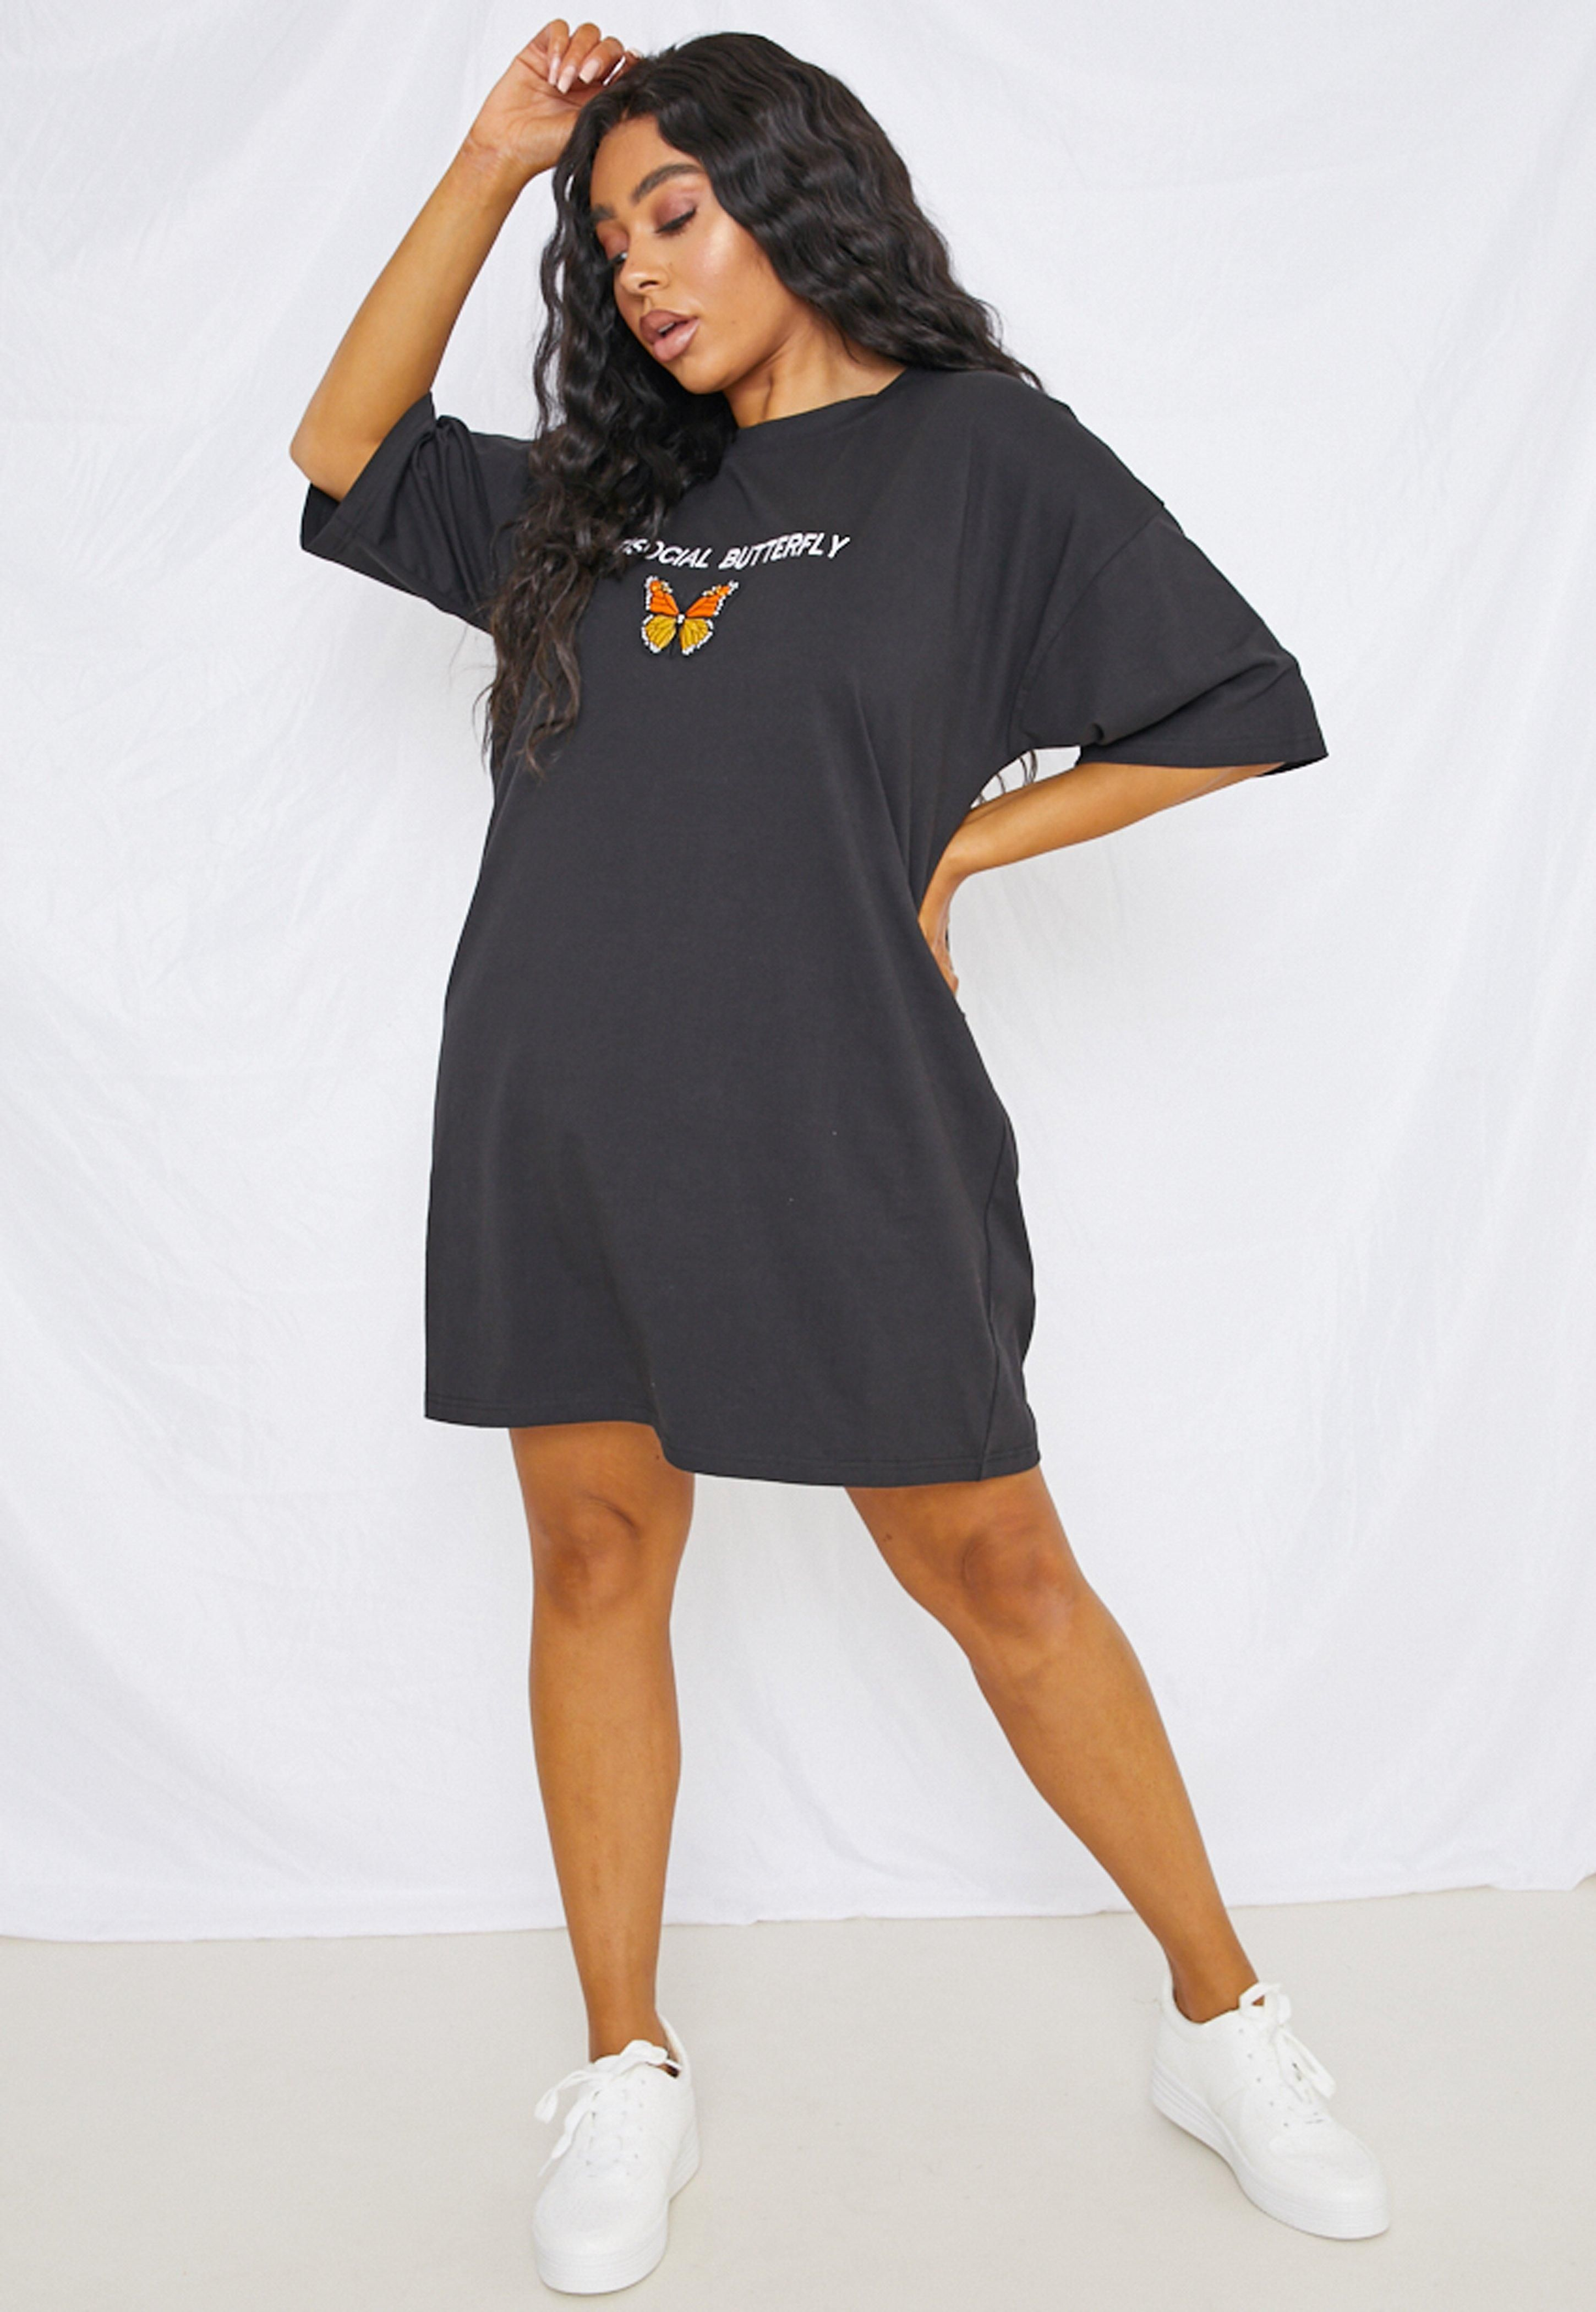 Plus Size Black Embroidered Butterfly Oversized T Shirt Dress Spon Tshirt Dress Outfit Tshirt Dress Outfit Black Girl Oversized Tshirt Dress Outfit Black Girl [ 4200 x 2900 Pixel ]